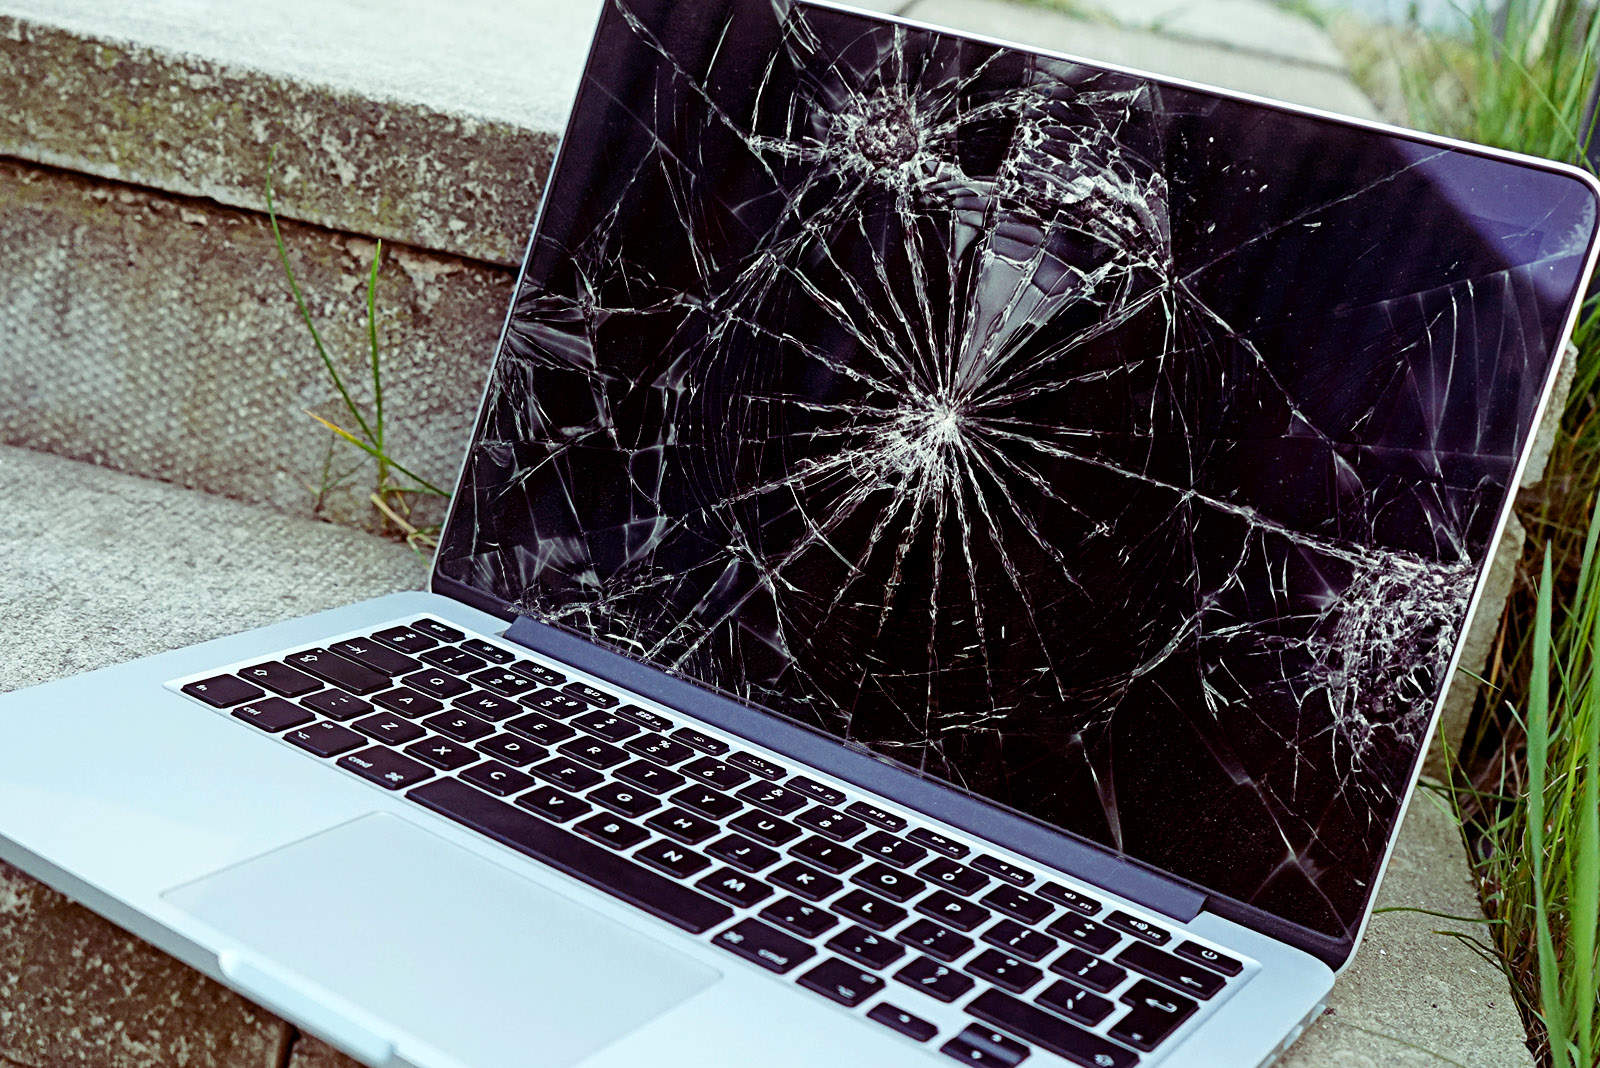 Sell your MacBook to us, even if it's busted.